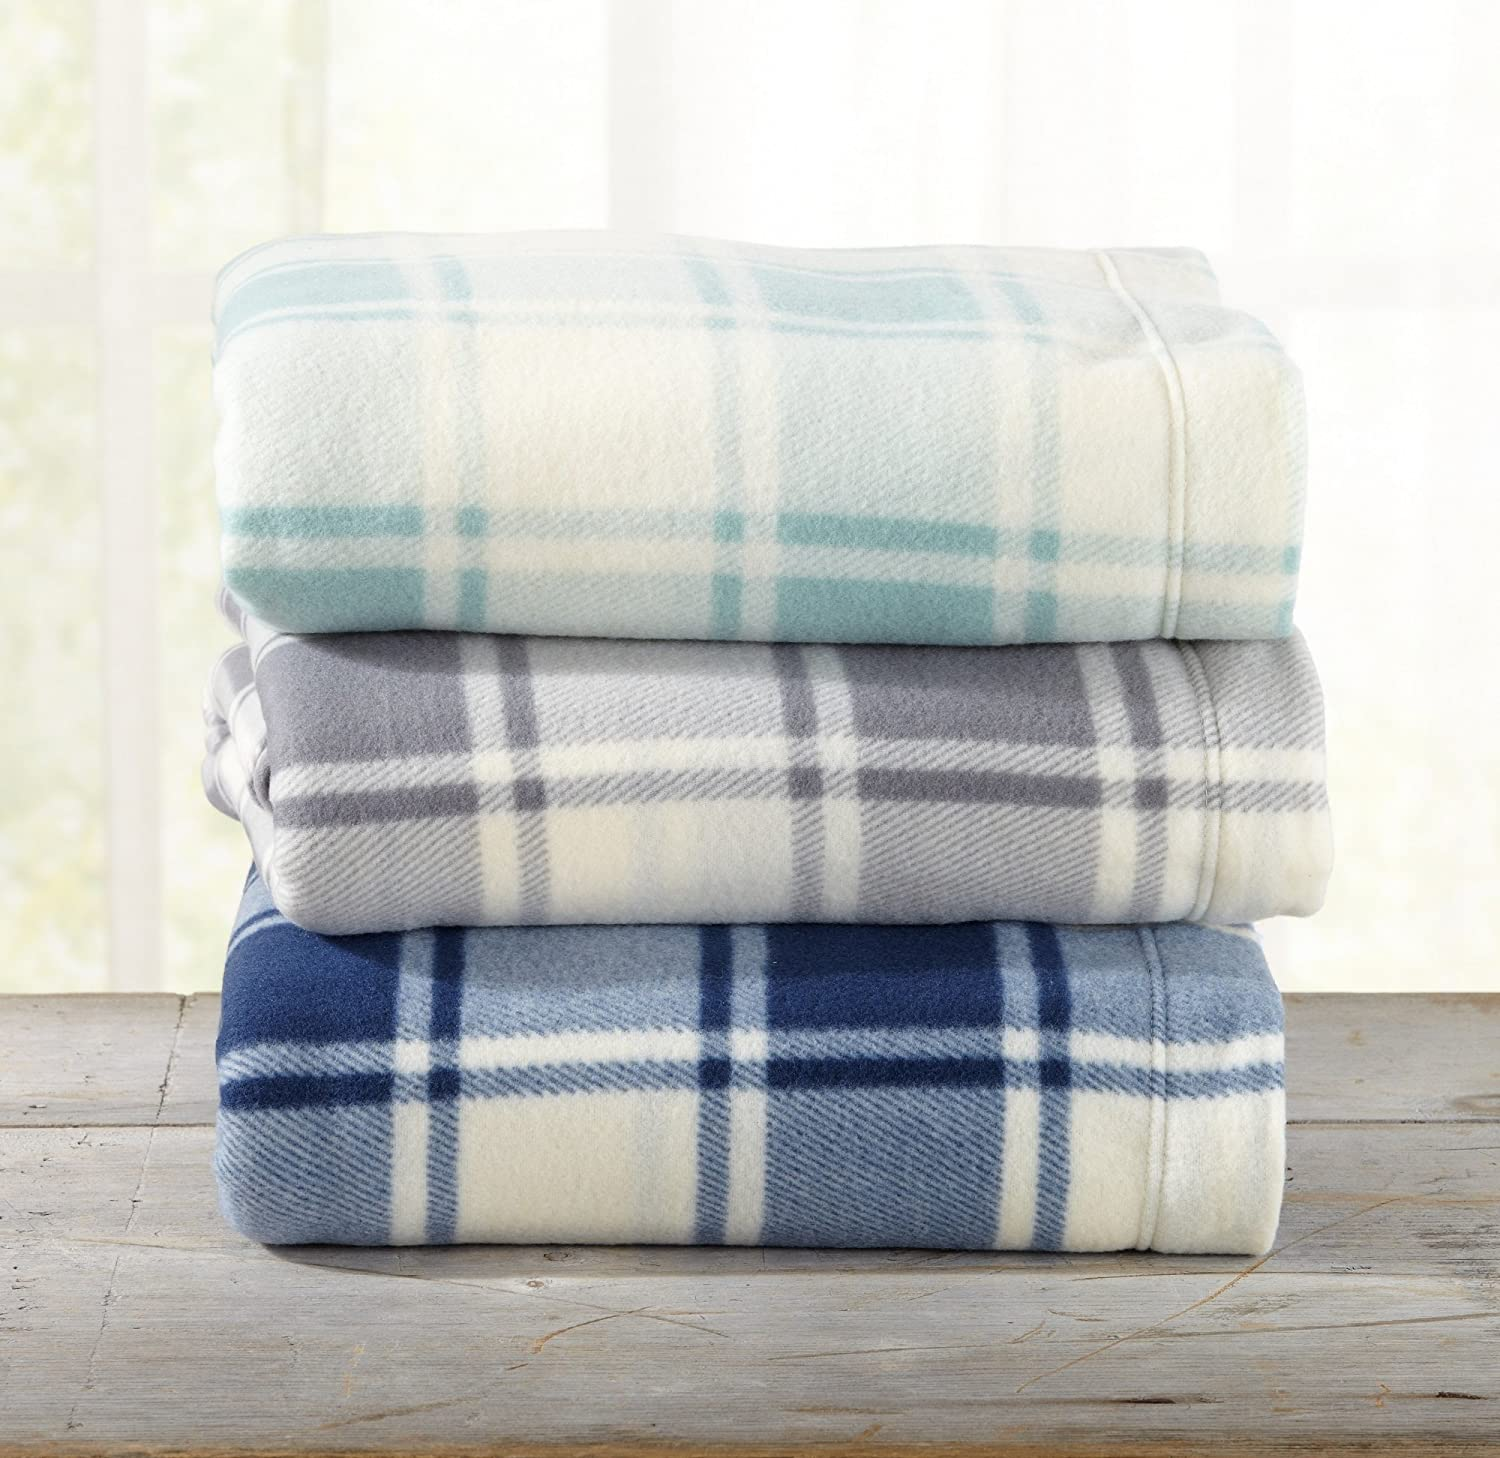 Durable Super Soft Extra Plush Plaid Fleece Sheet Set Dara Collection by Great Bay Home Brand. Warm Full, Navy Breathable Winter Sheets with Plaid Pattern Smooth Cozy